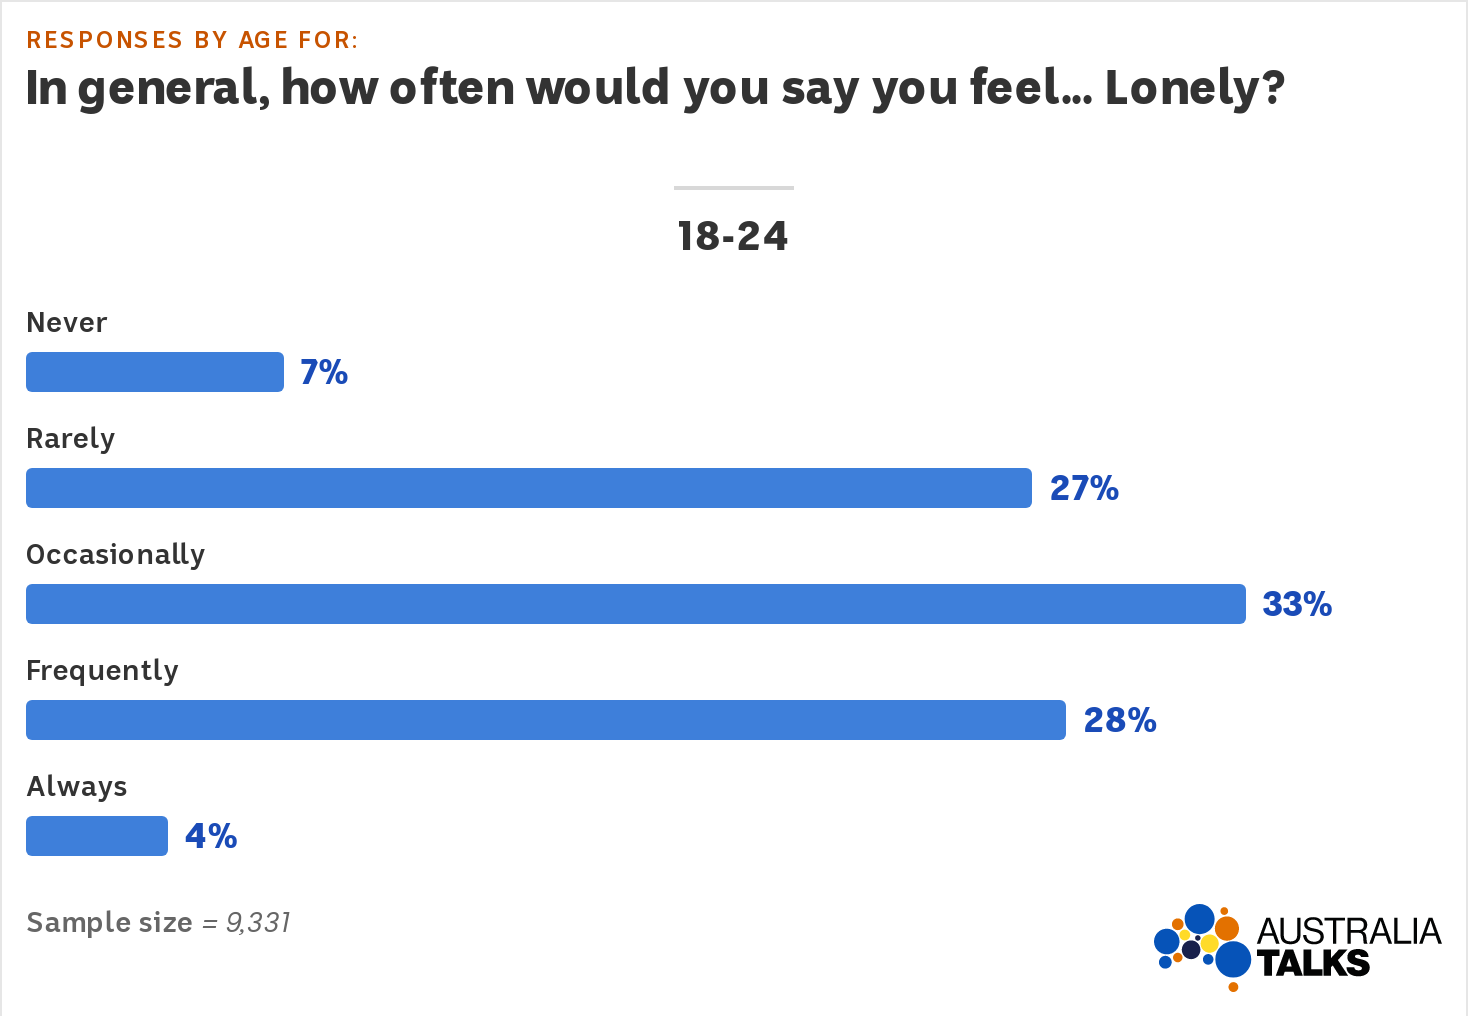 A stacked bar graph shows 7% of 18-24s feel lonely never, 27% rarely, 33% occasionally, 28% frequently, 4% always